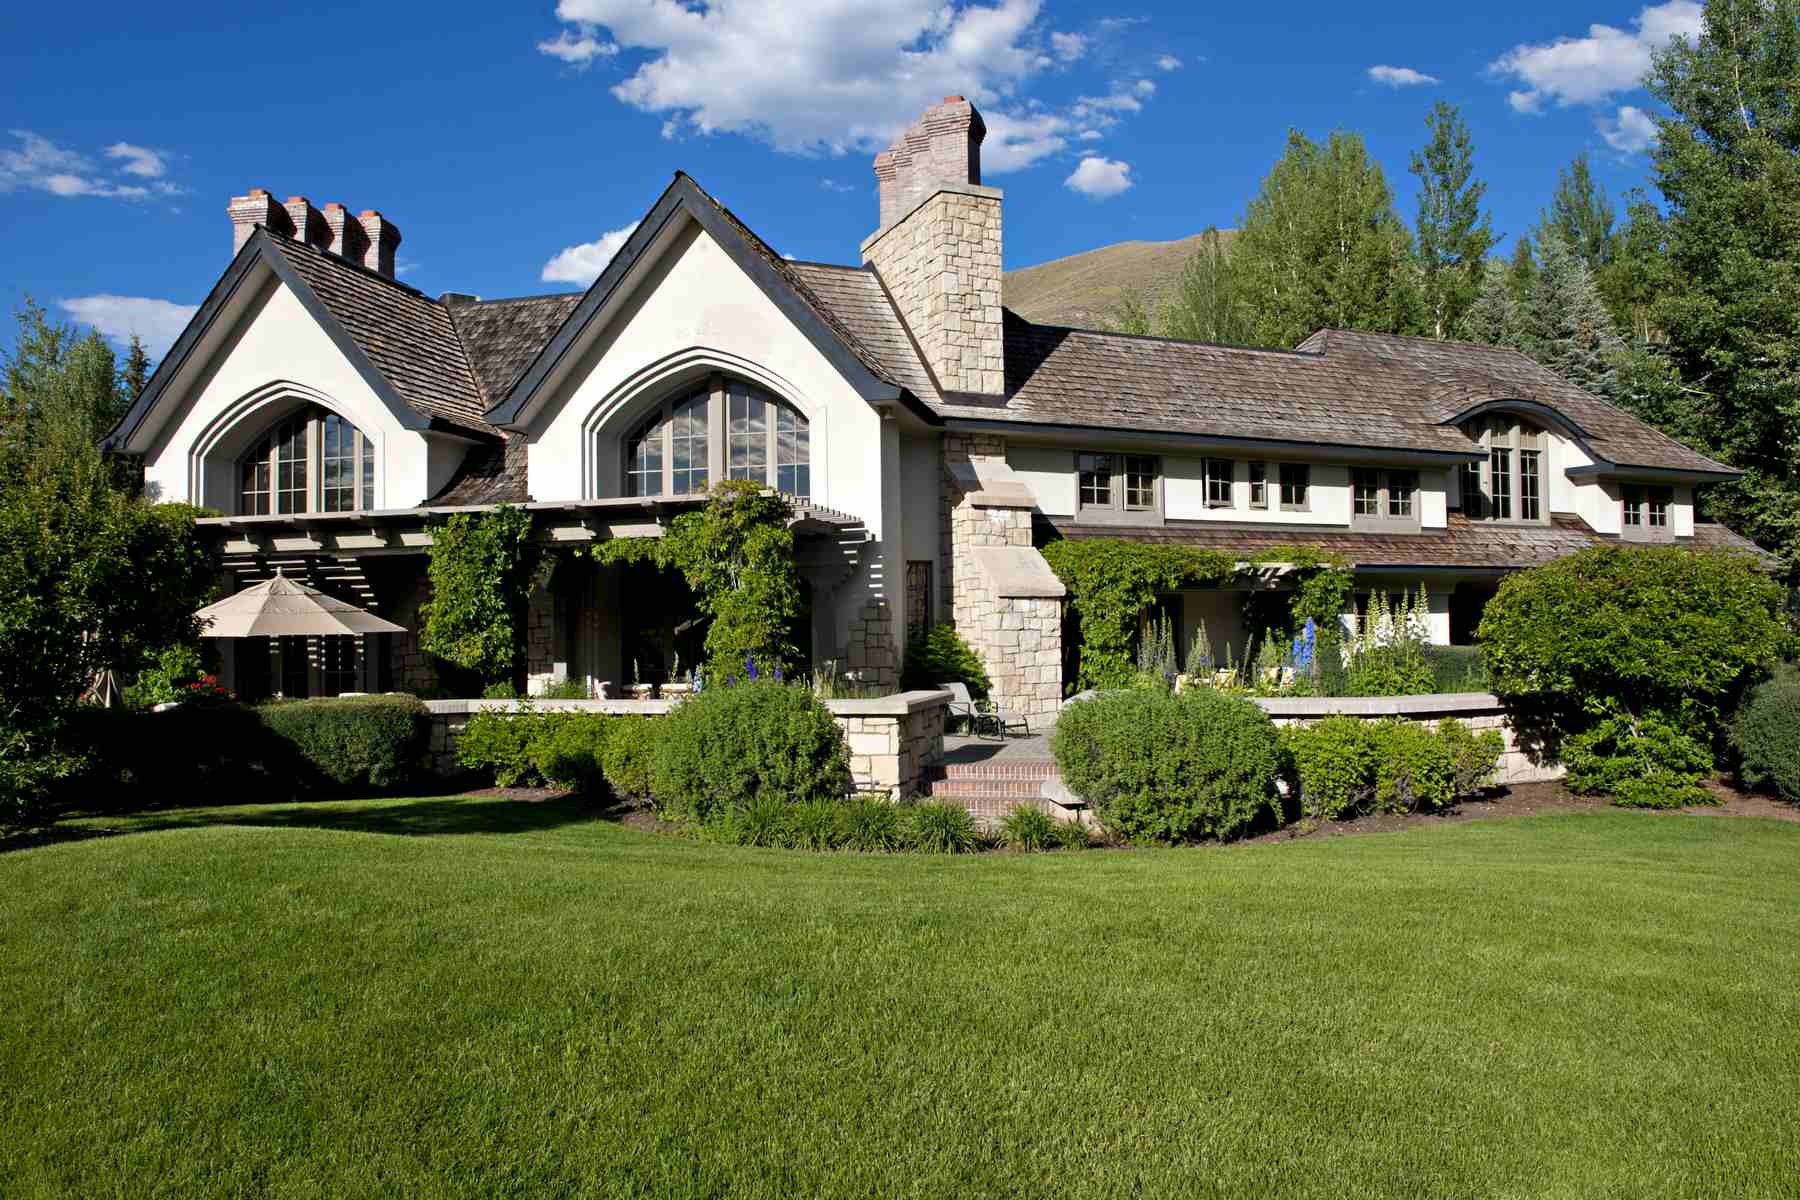 Casa Unifamiliar por un Venta en Elegant English Country Manor 101 Wedeln Sun Valley, Idaho 83340 Estados Unidos